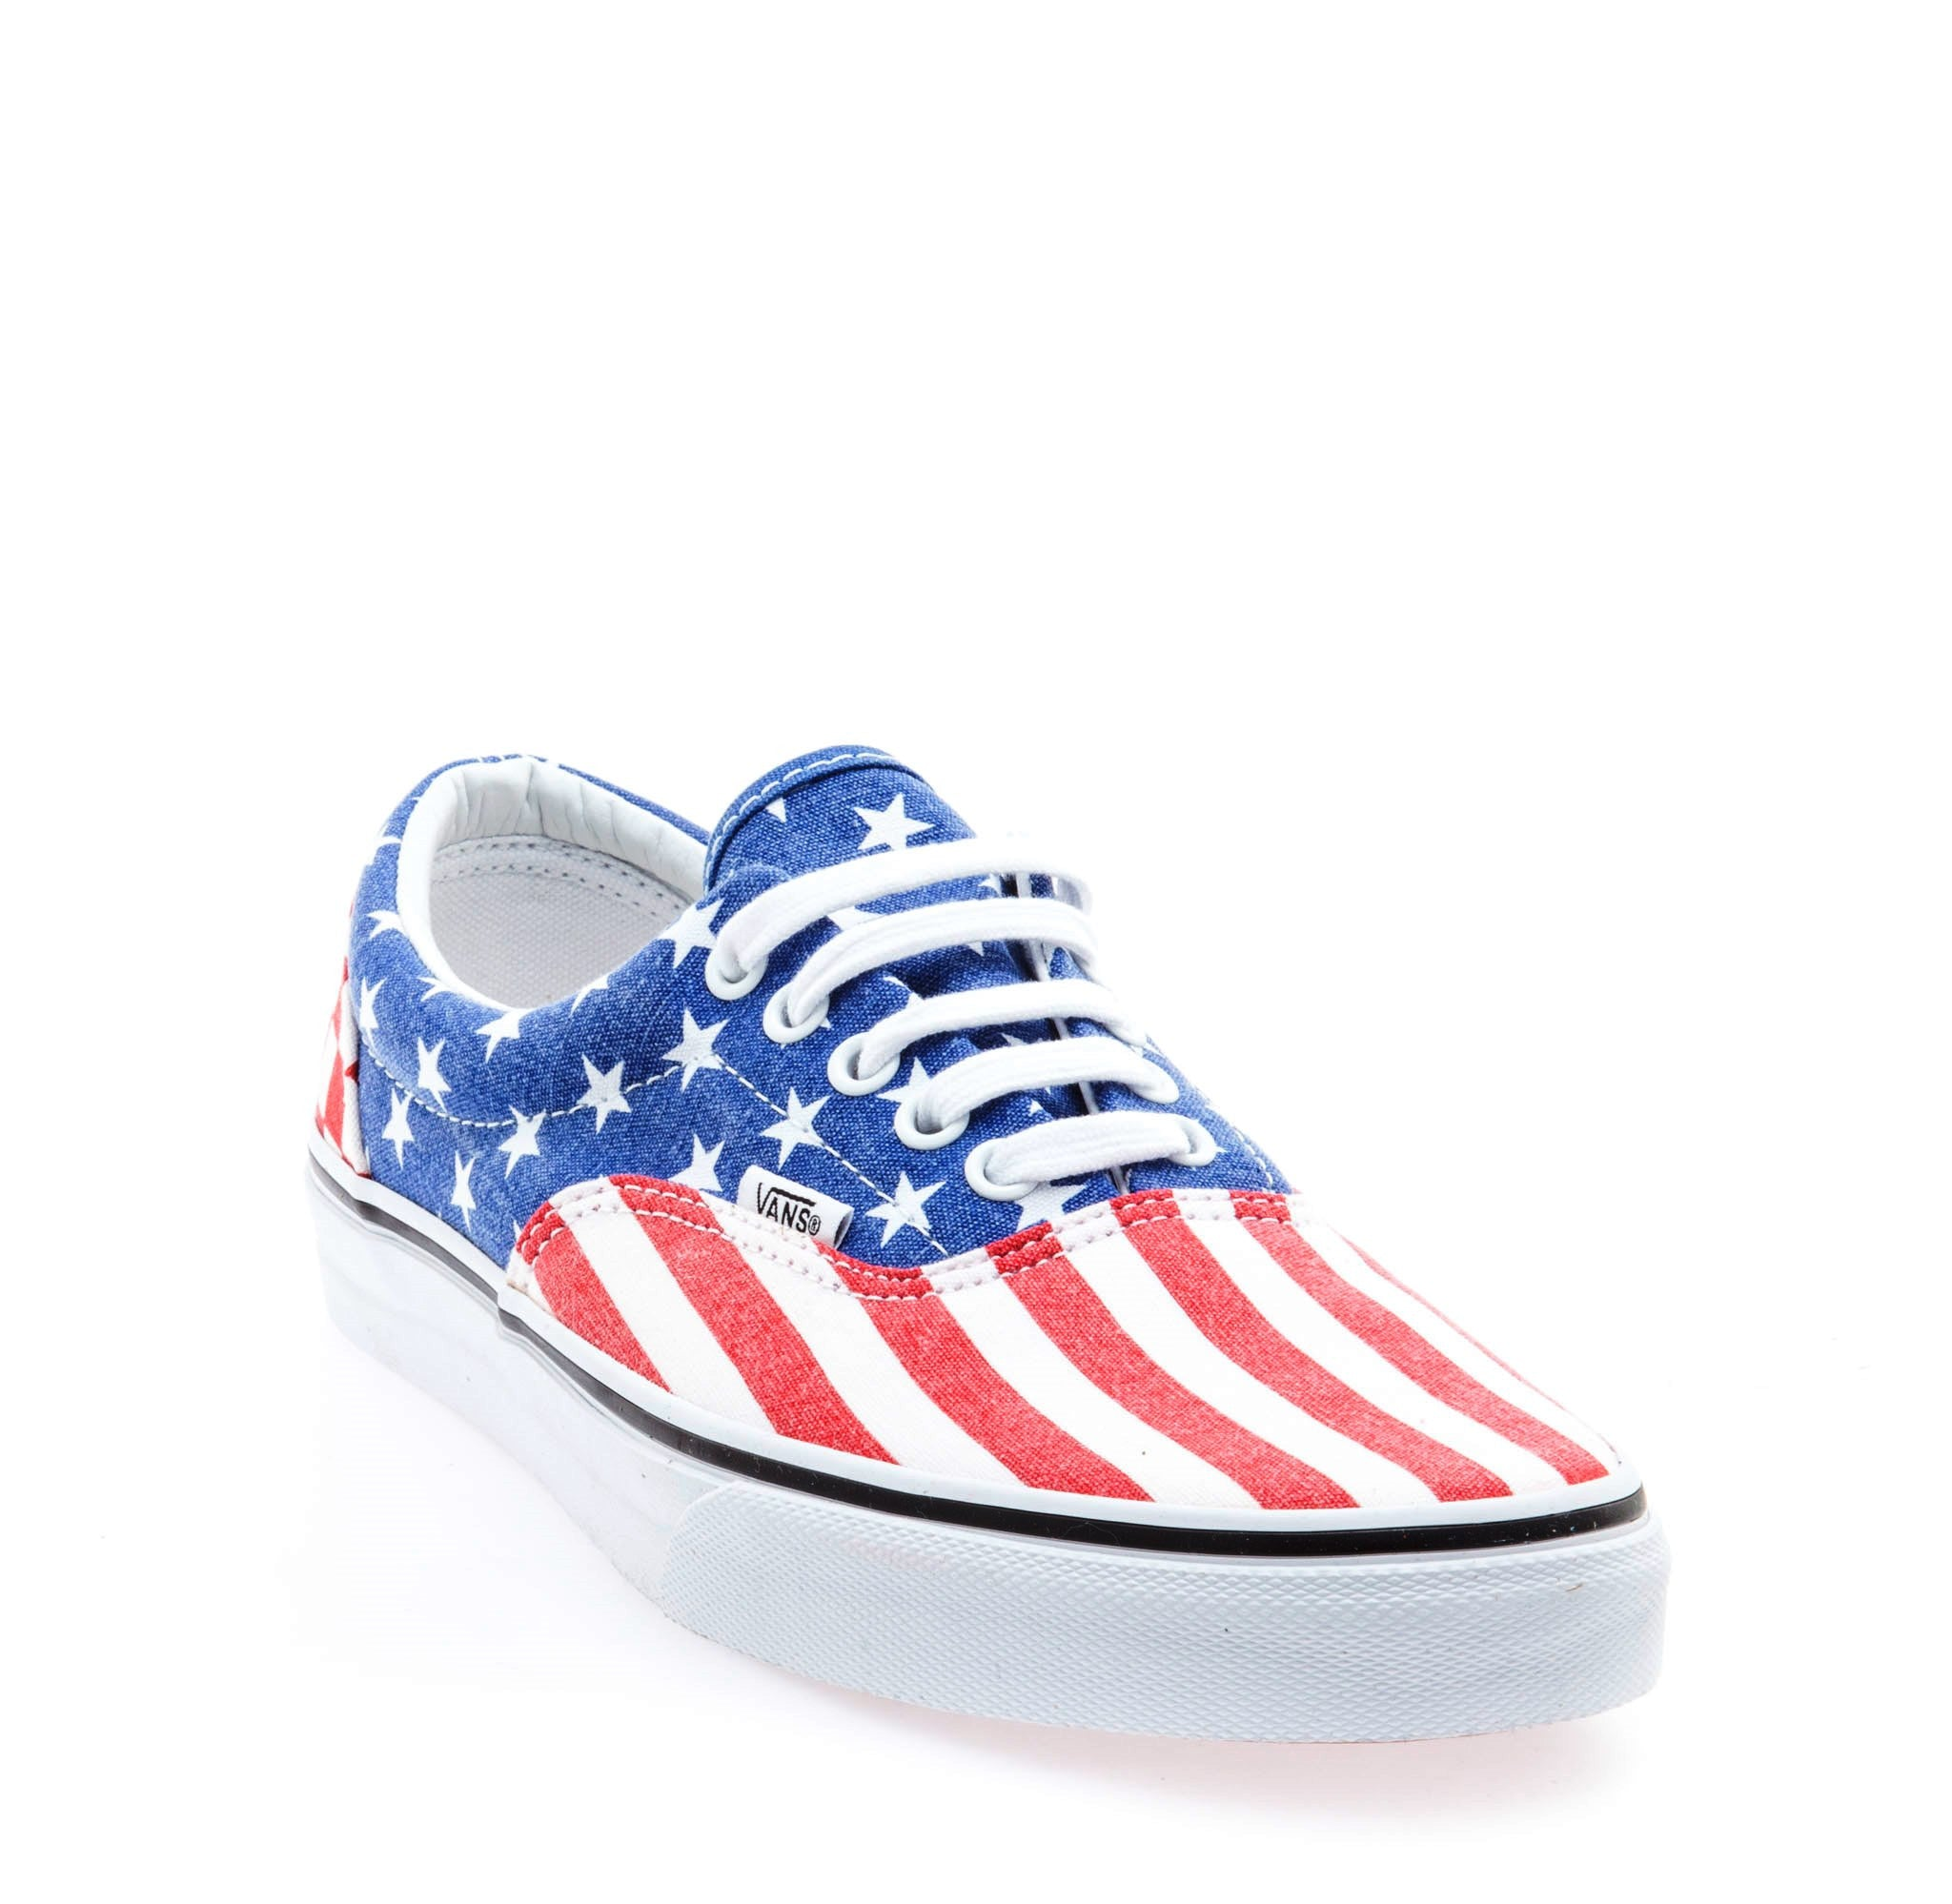 Van Doren Era Stars/Stripes/Checkers